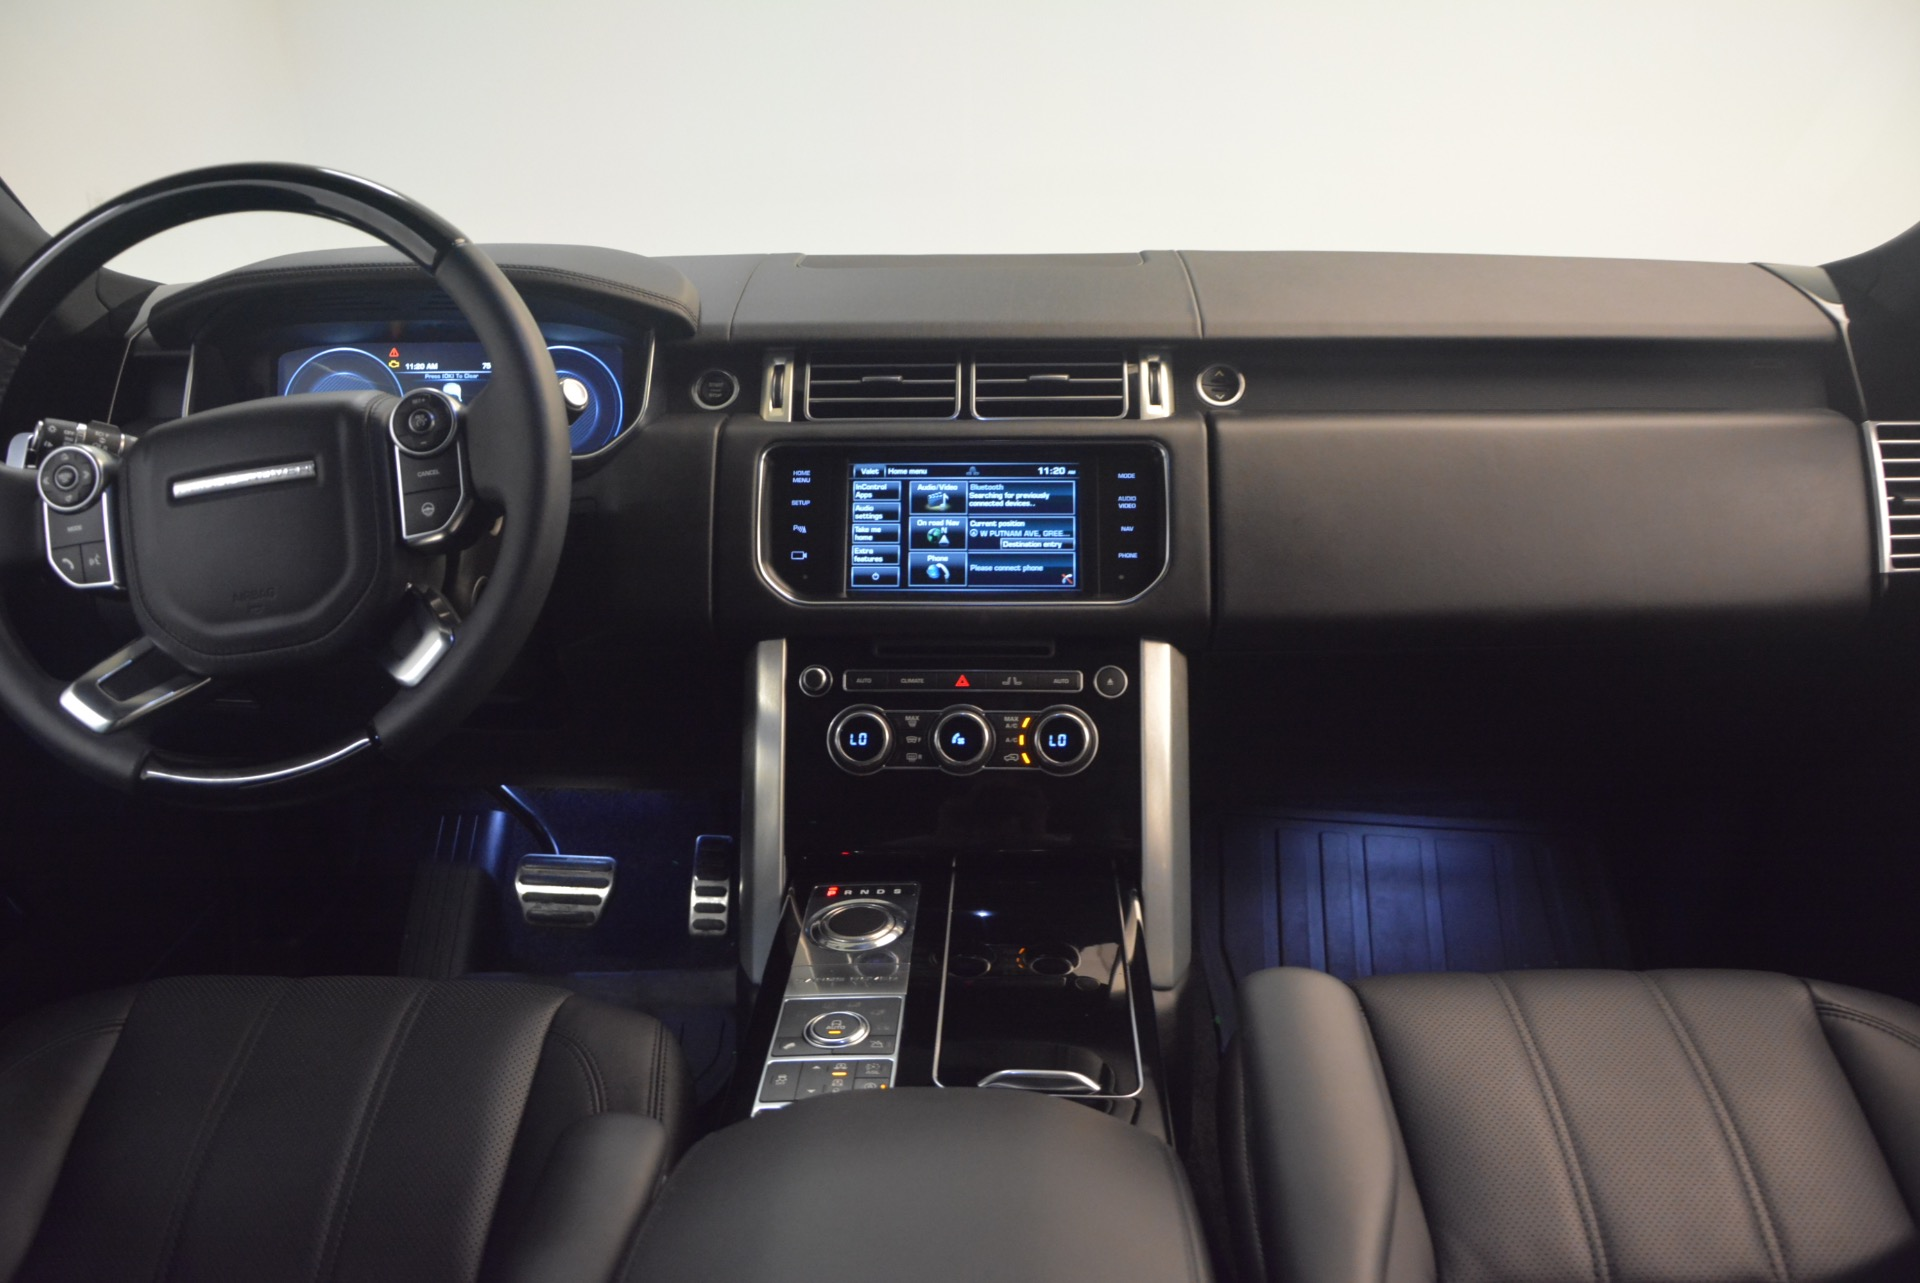 Used 2015 Land Rover Range Rover Supercharged For Sale In Greenwich, CT 1292_p38